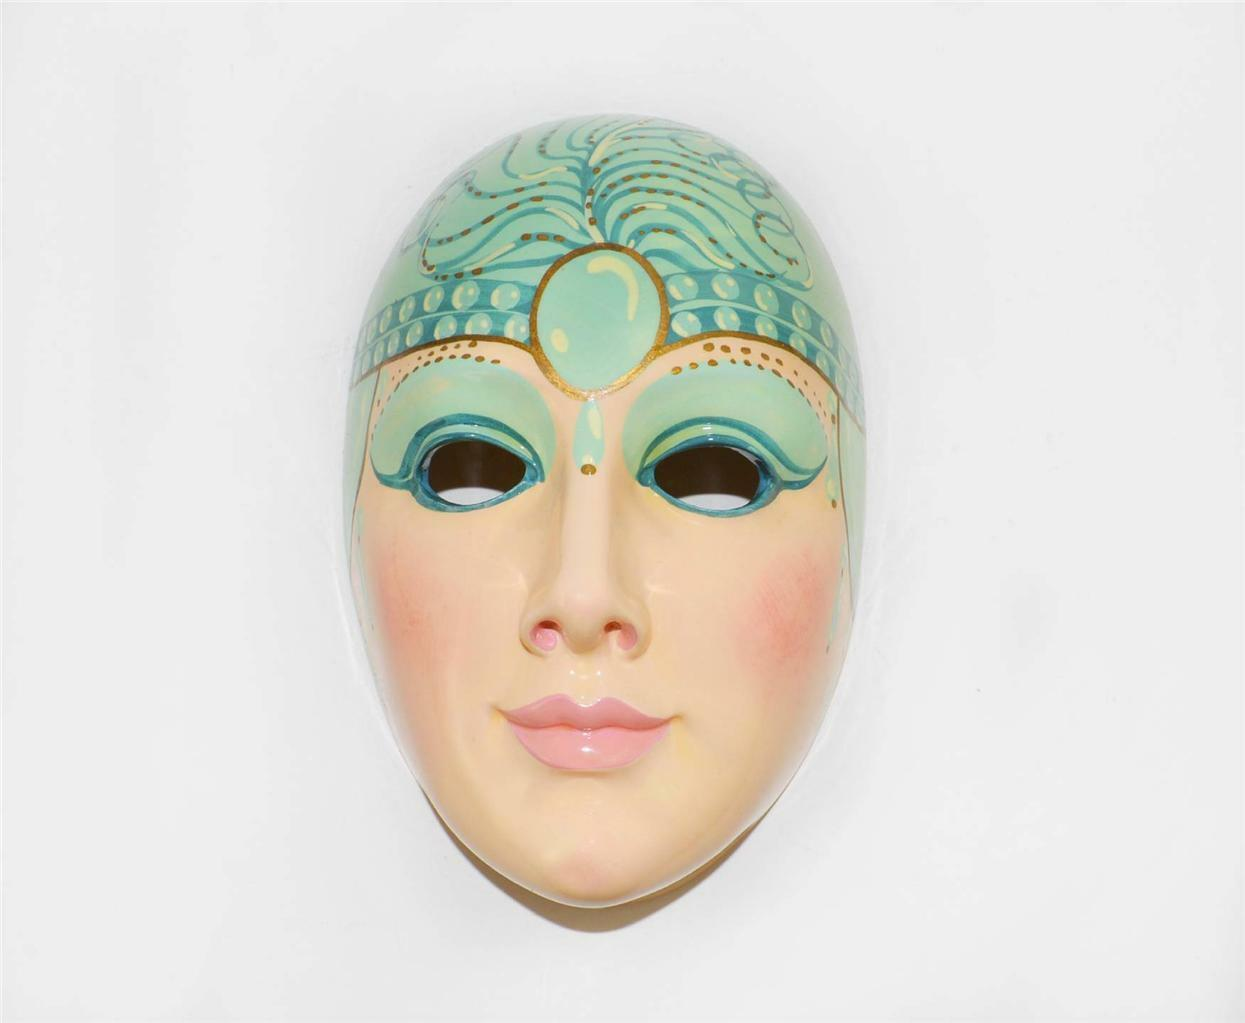 NEW ROYAL ORLEANS STONELITE ART DECO FACE WALL MASKby PAOLA BENSI 51 500